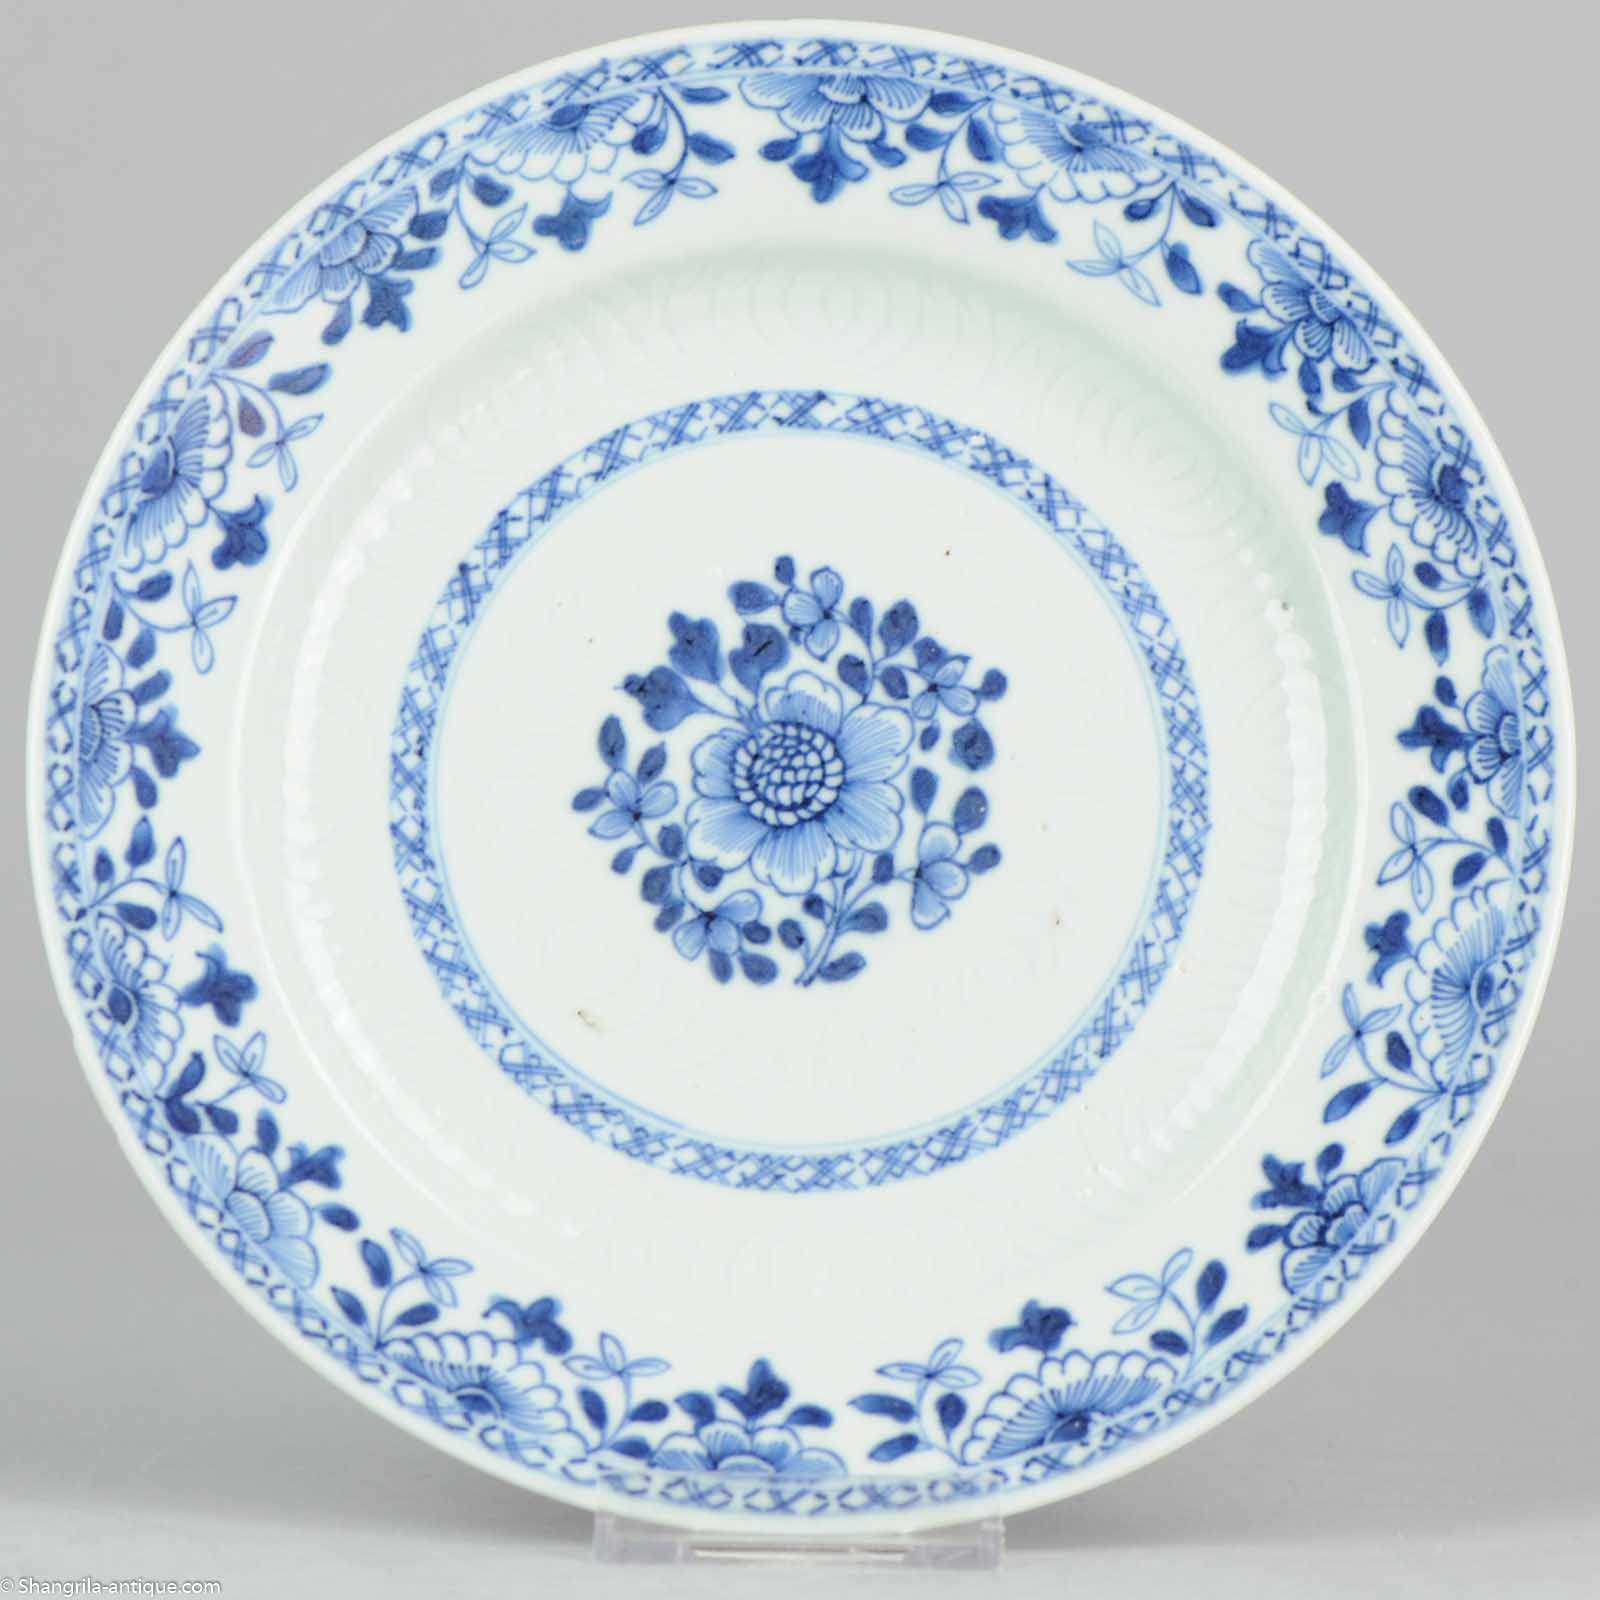 Chinese Porcelain Plates : Cm c chinese porcelain blue and white plate carved